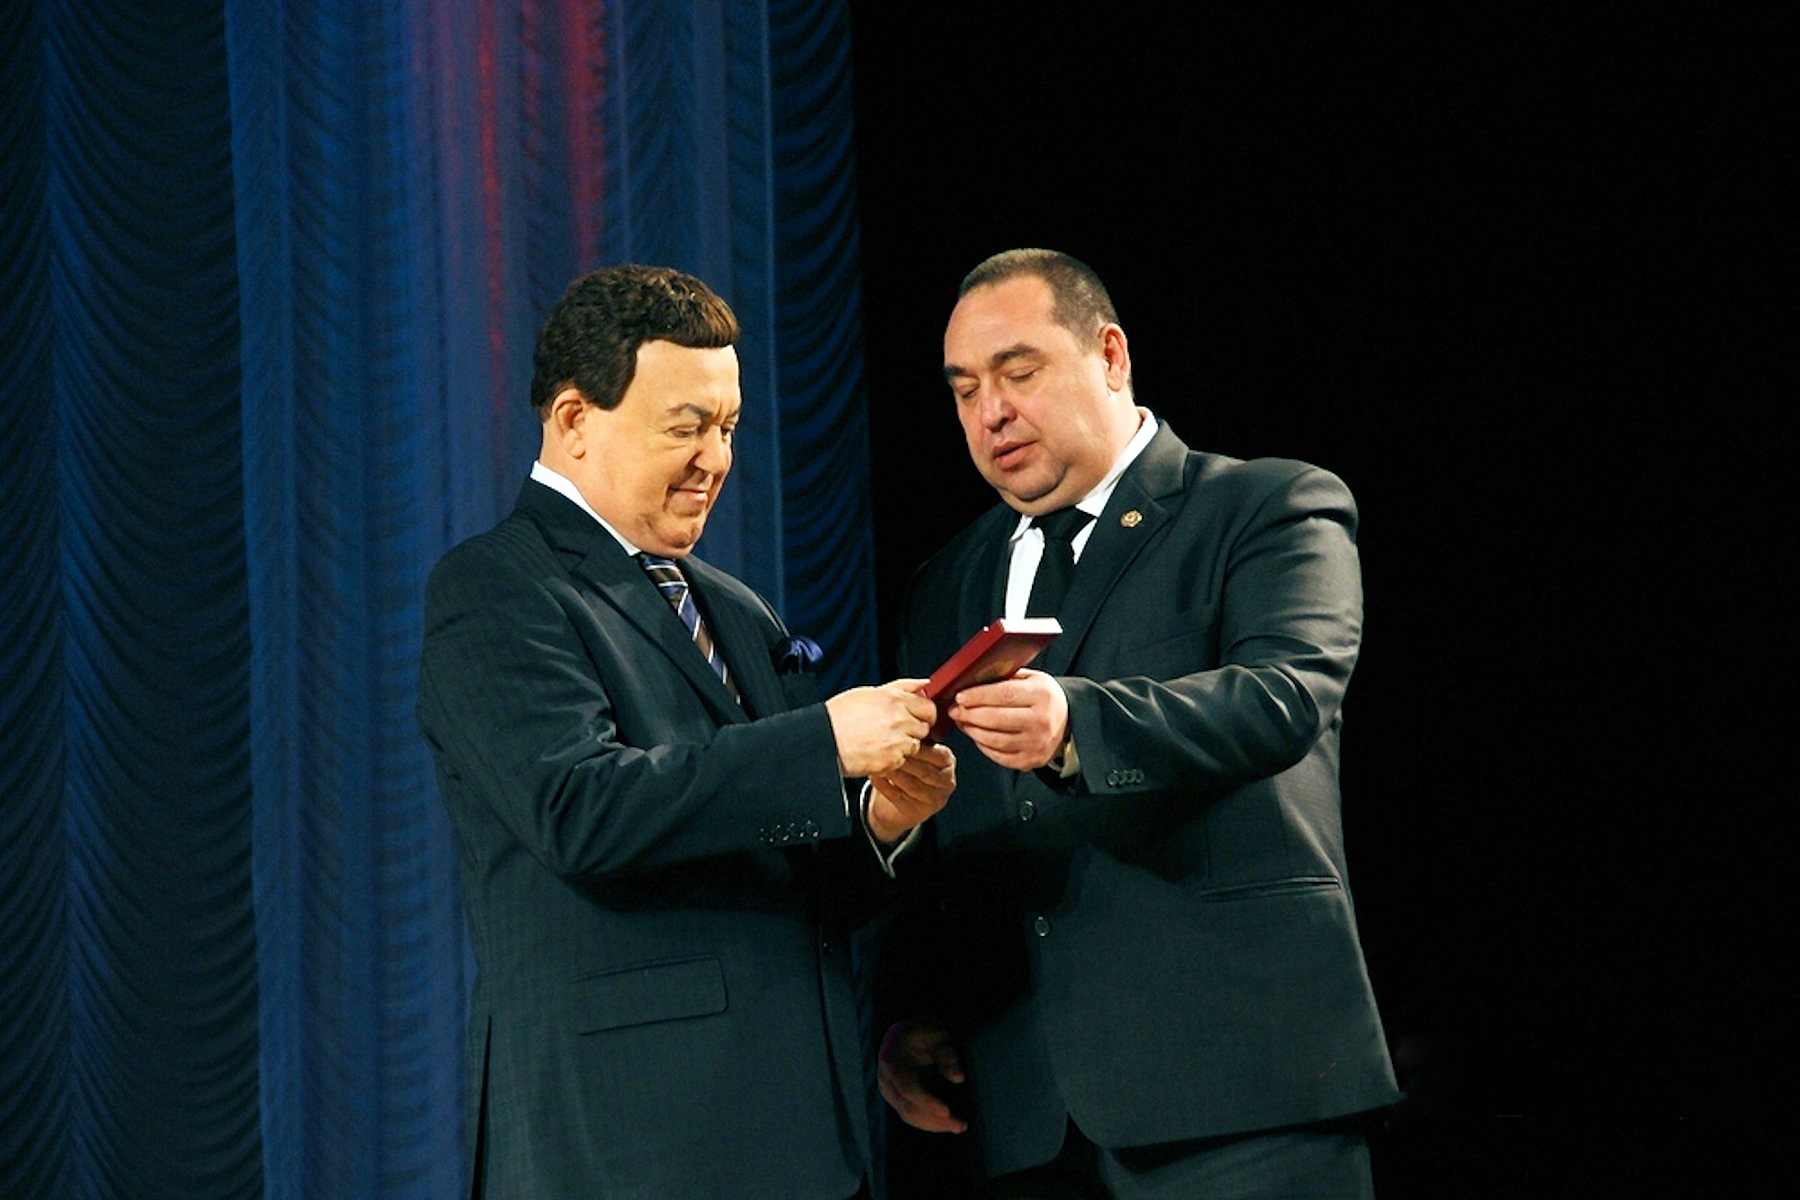 00 lnr plotnitsky and Kobzon. 281215